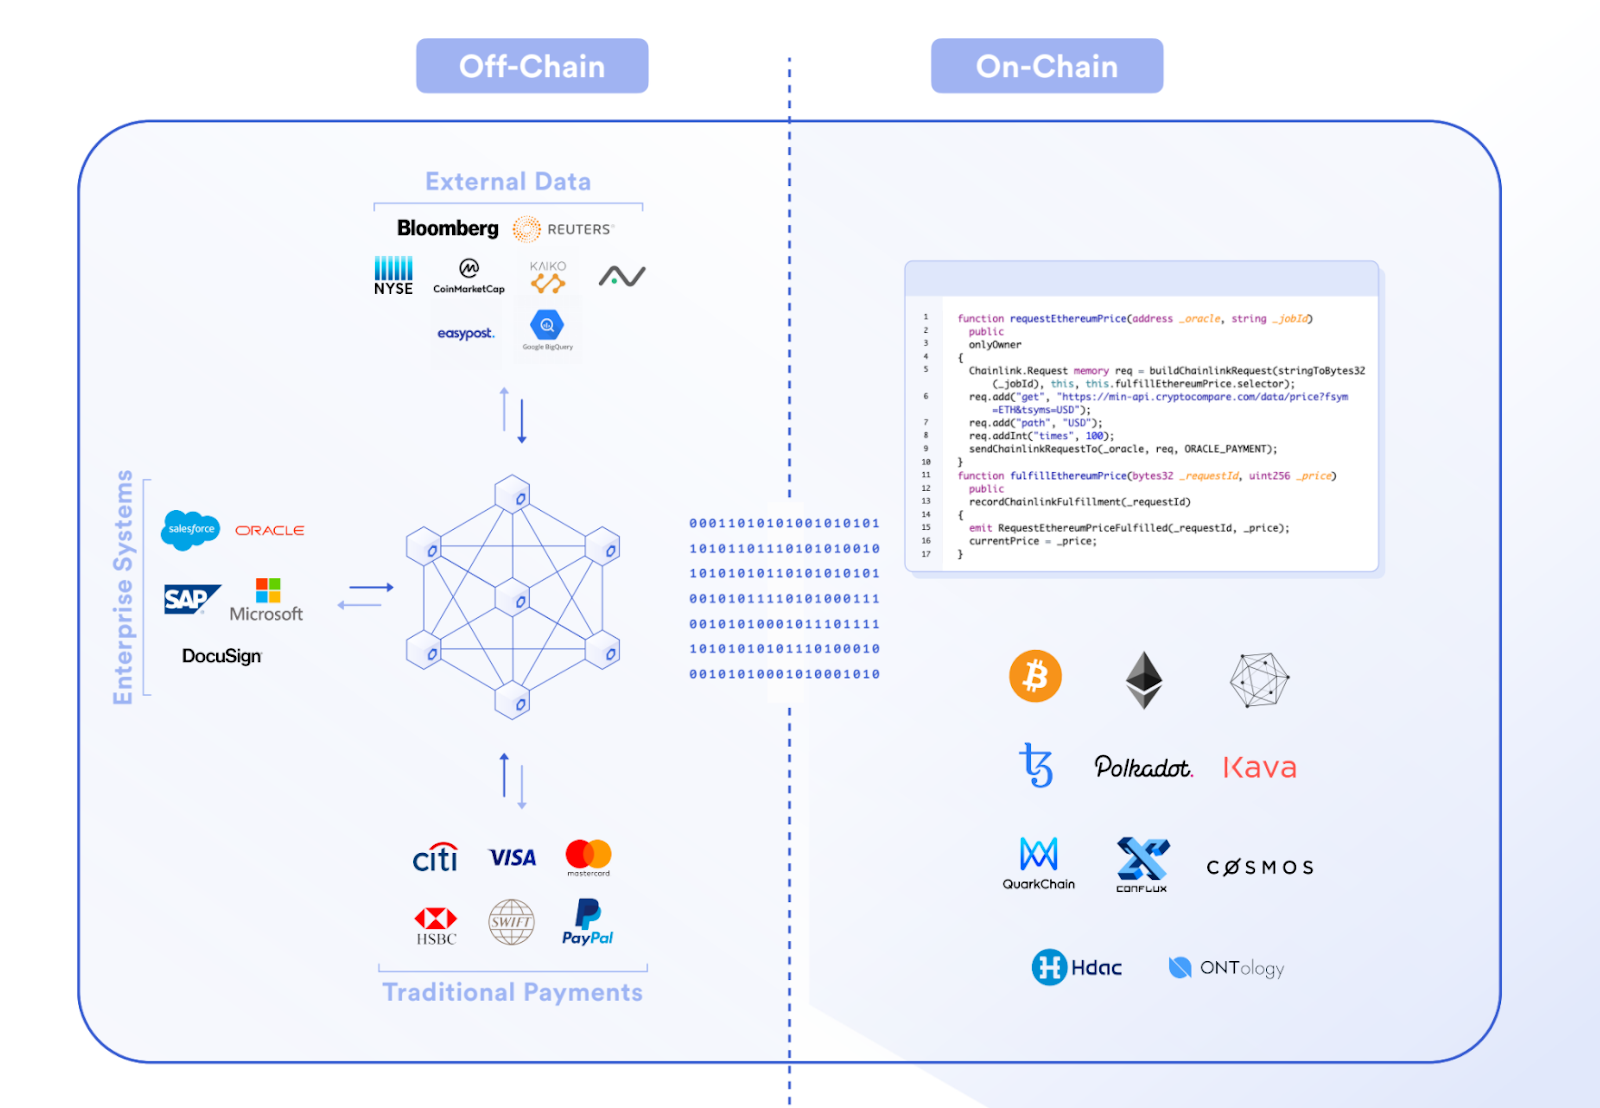 Smart Contracts are split into off-chain and on-chain components